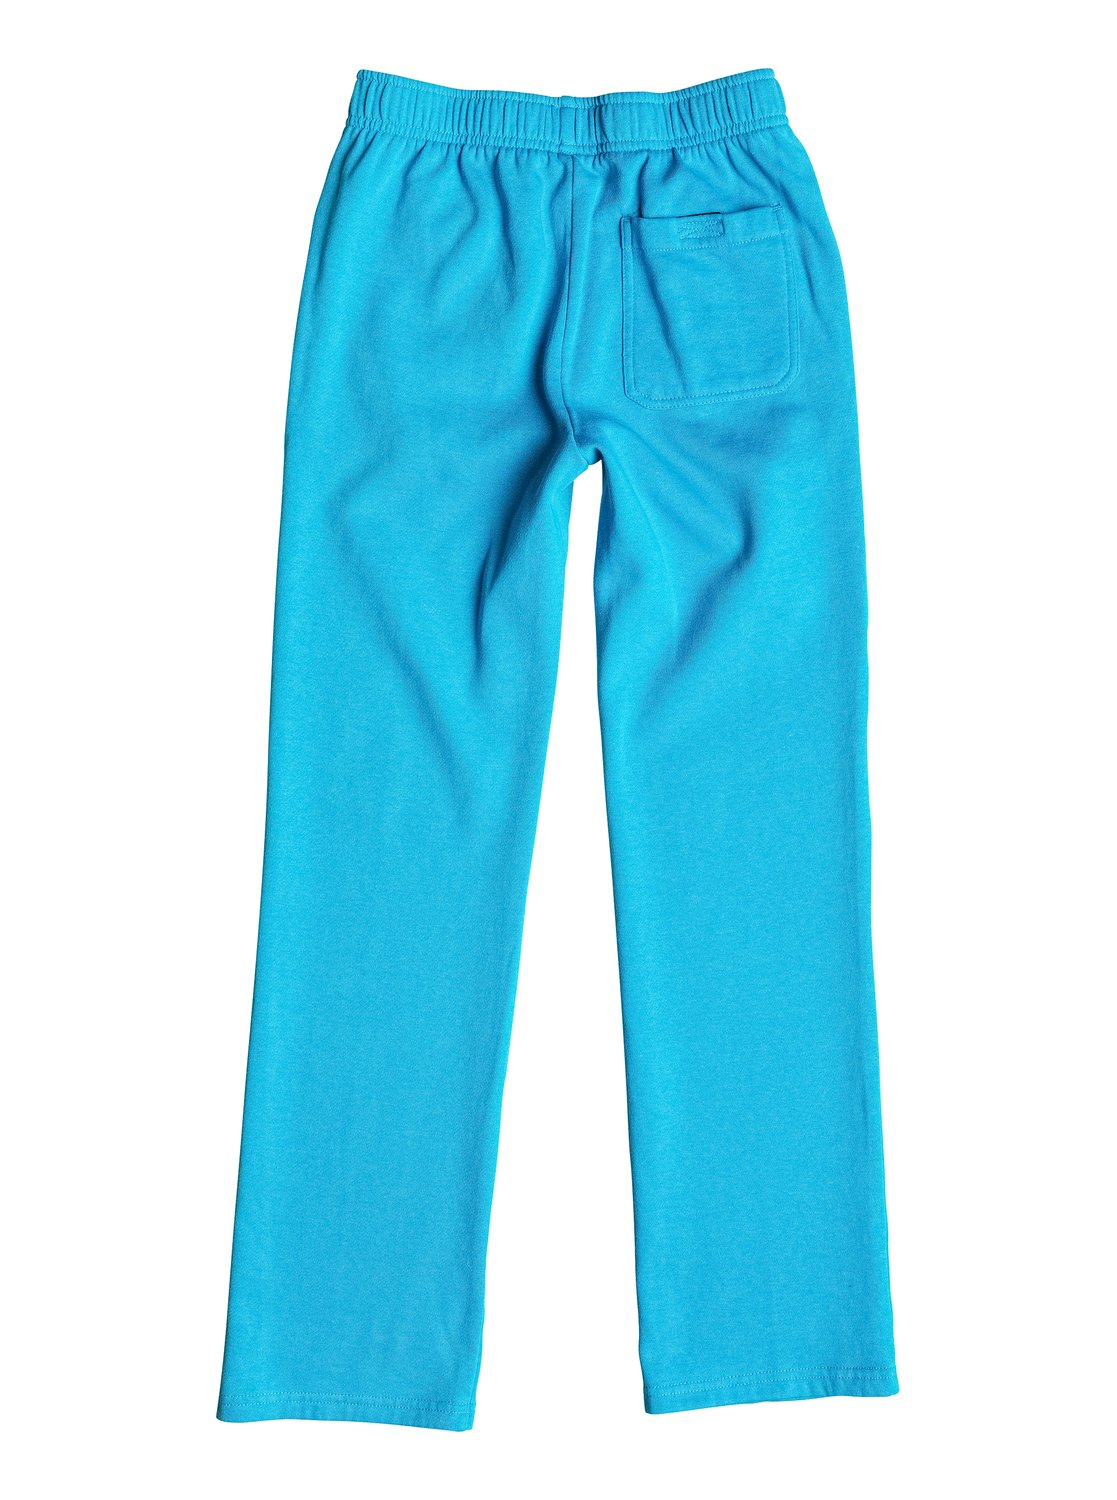 Find great deals on eBay for boys fleece pants. Shop with confidence.